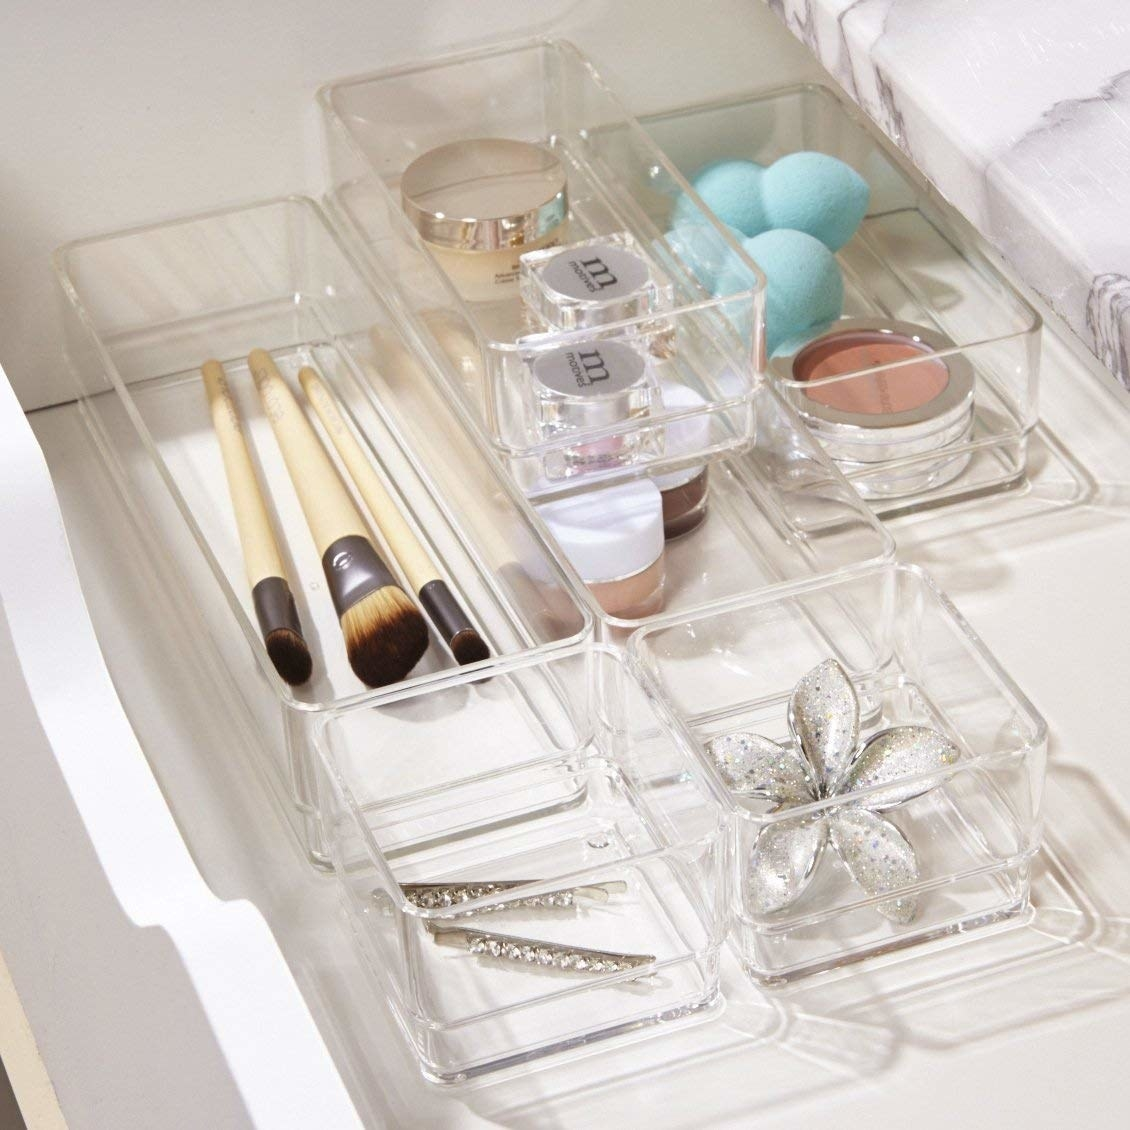 small clear bins holding various makeup accessories